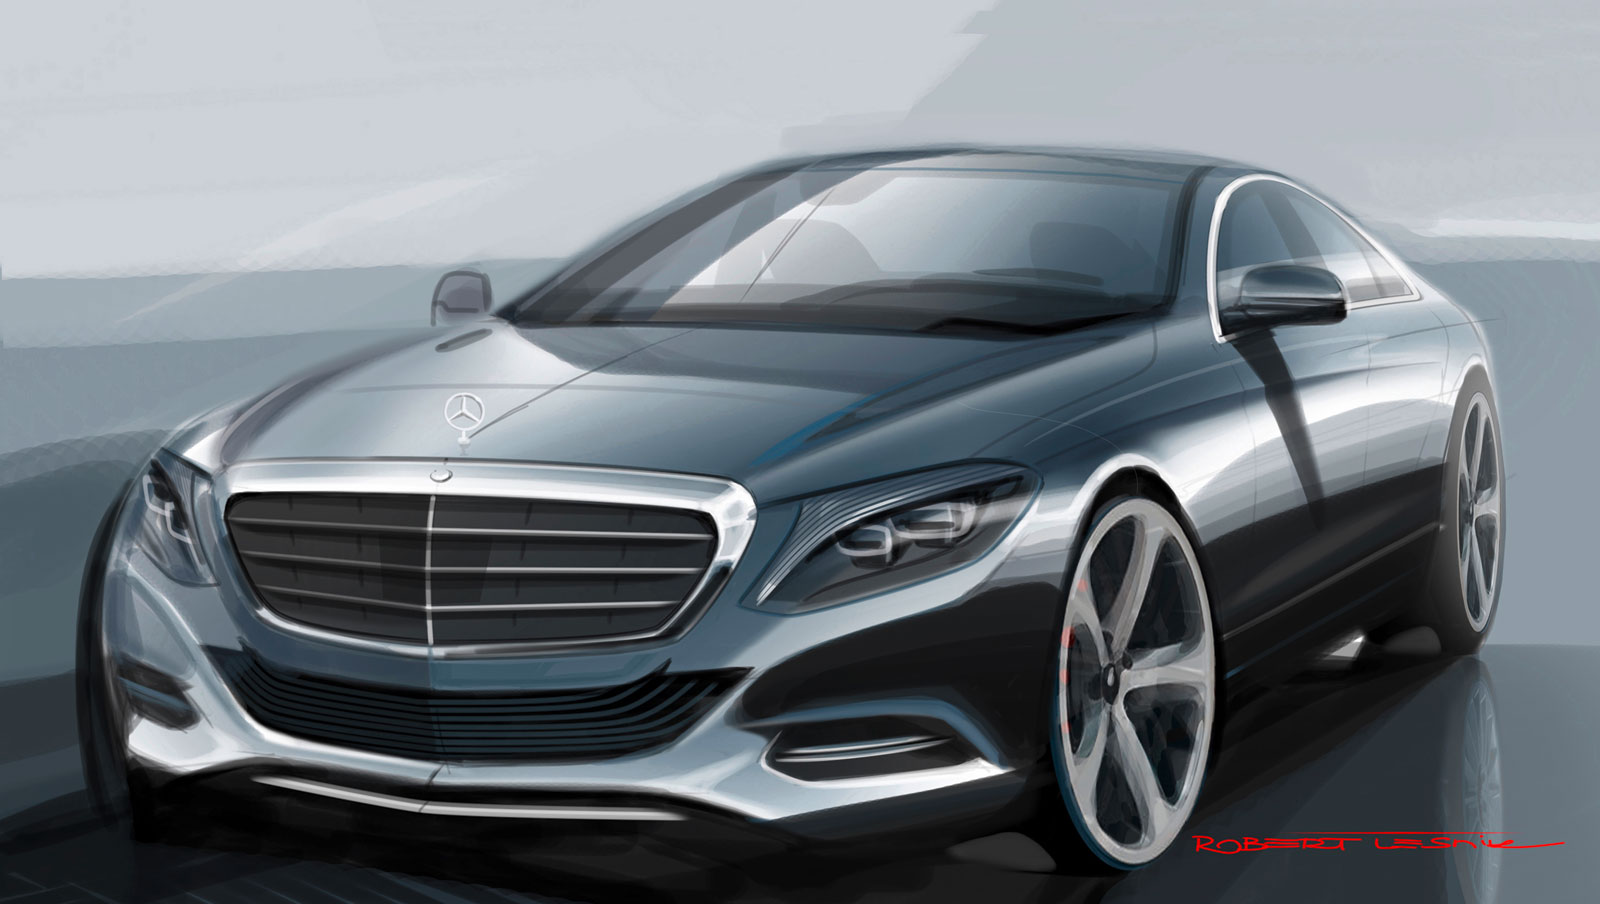 2014 mercedes benz s class design sketch car body design for New mercedes benz s class 2014